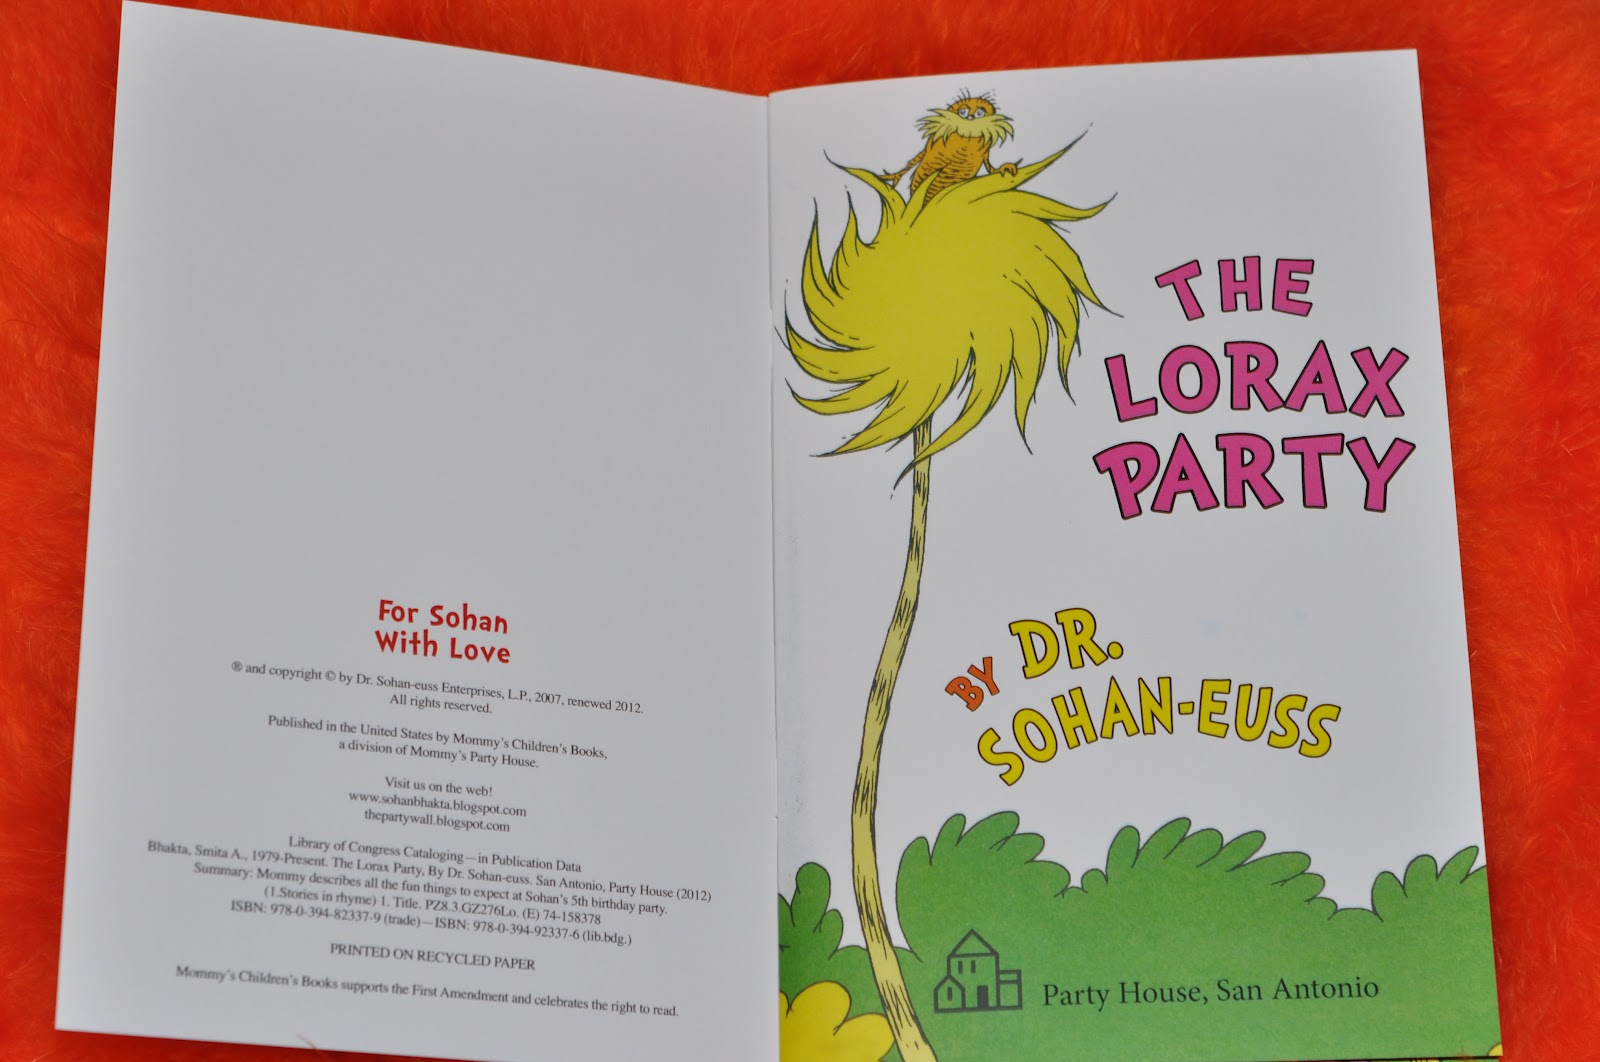 the party wall lorax party lorax book invitations